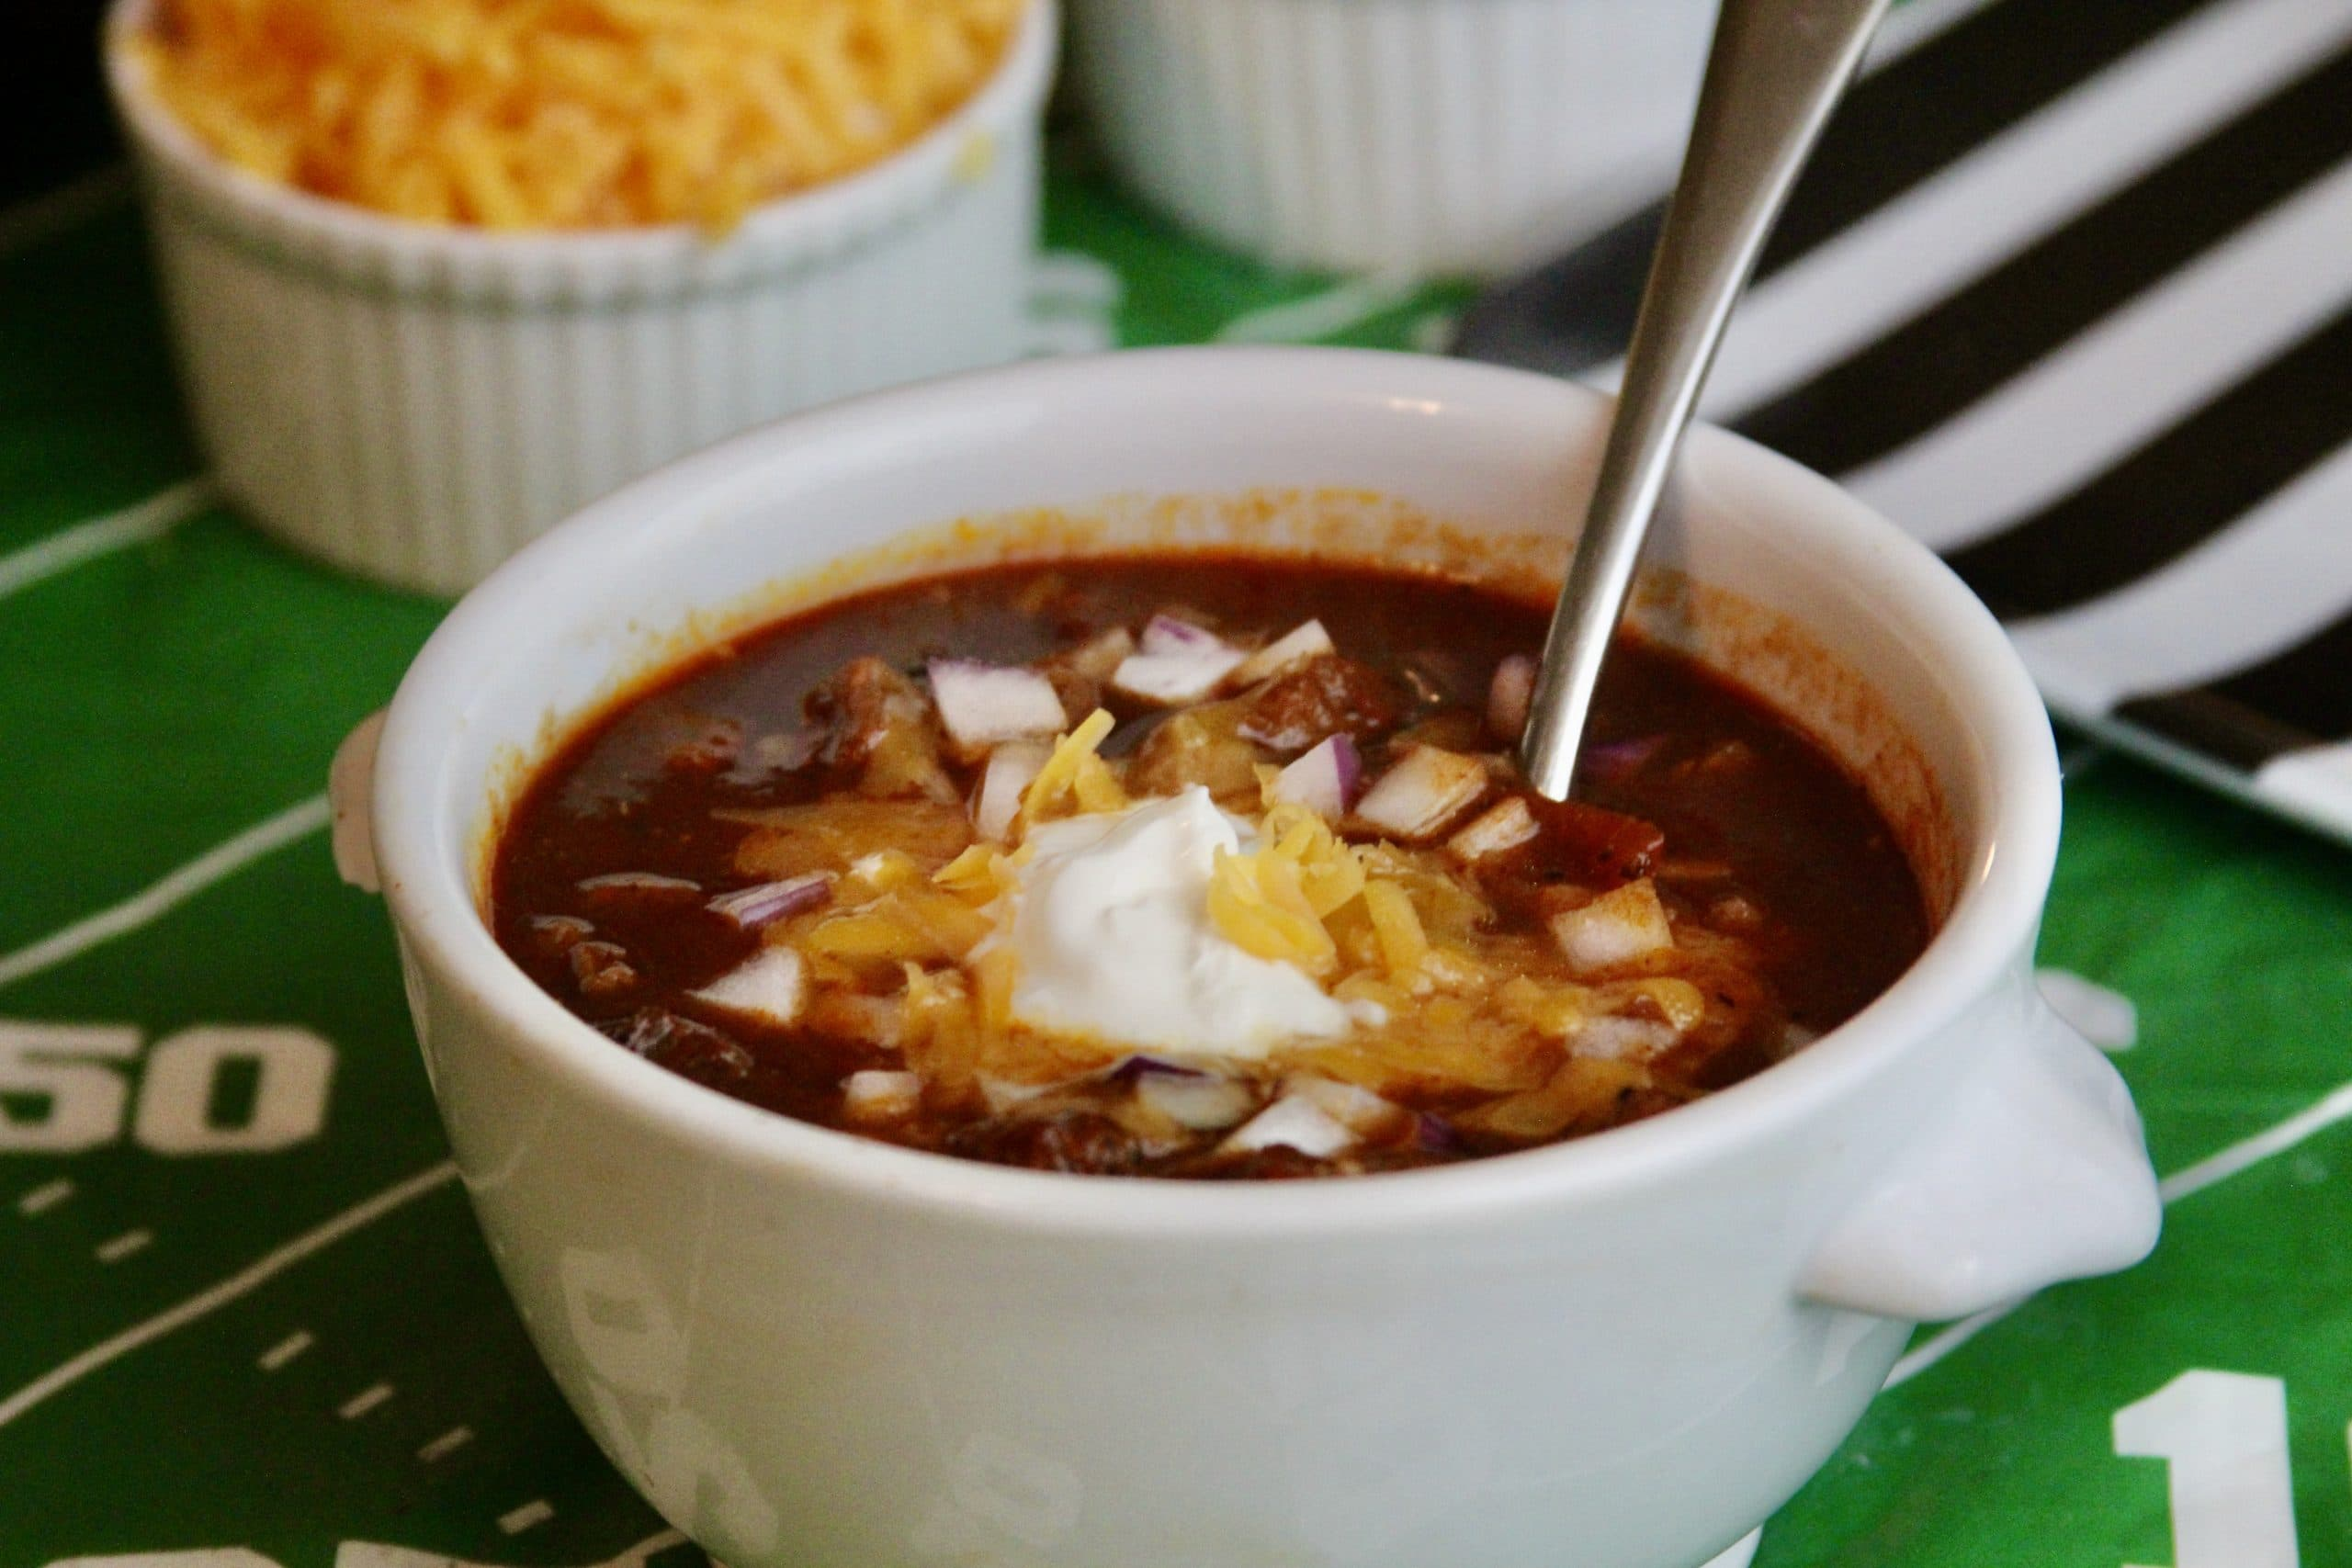 Ground beef chili in bowl